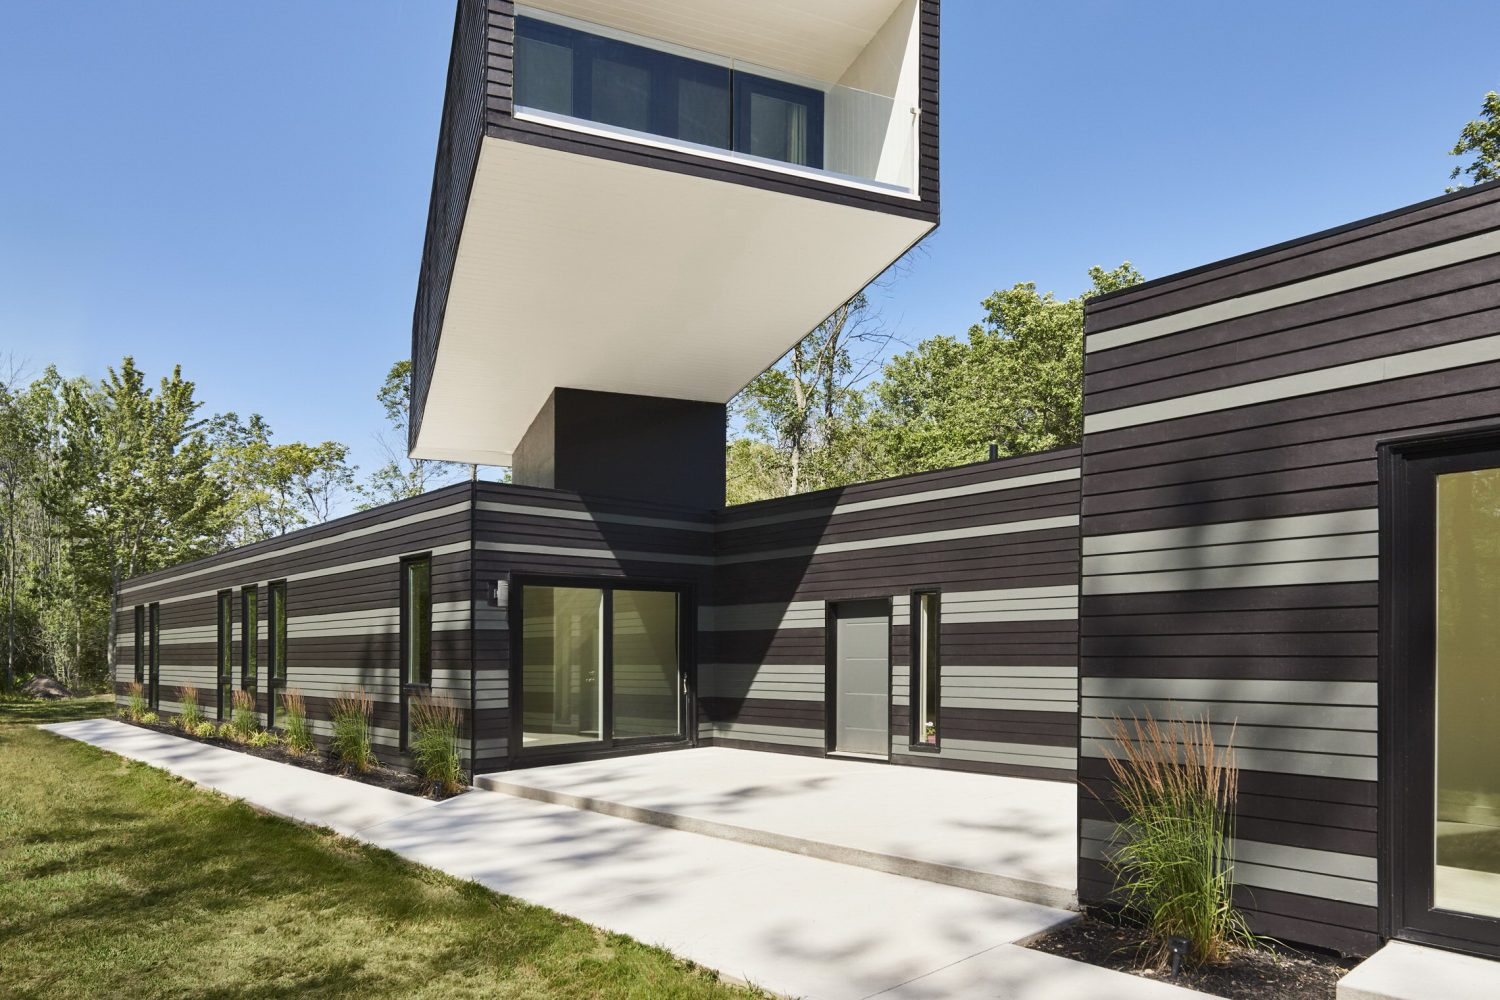 A Bower House by Kariouk Associates